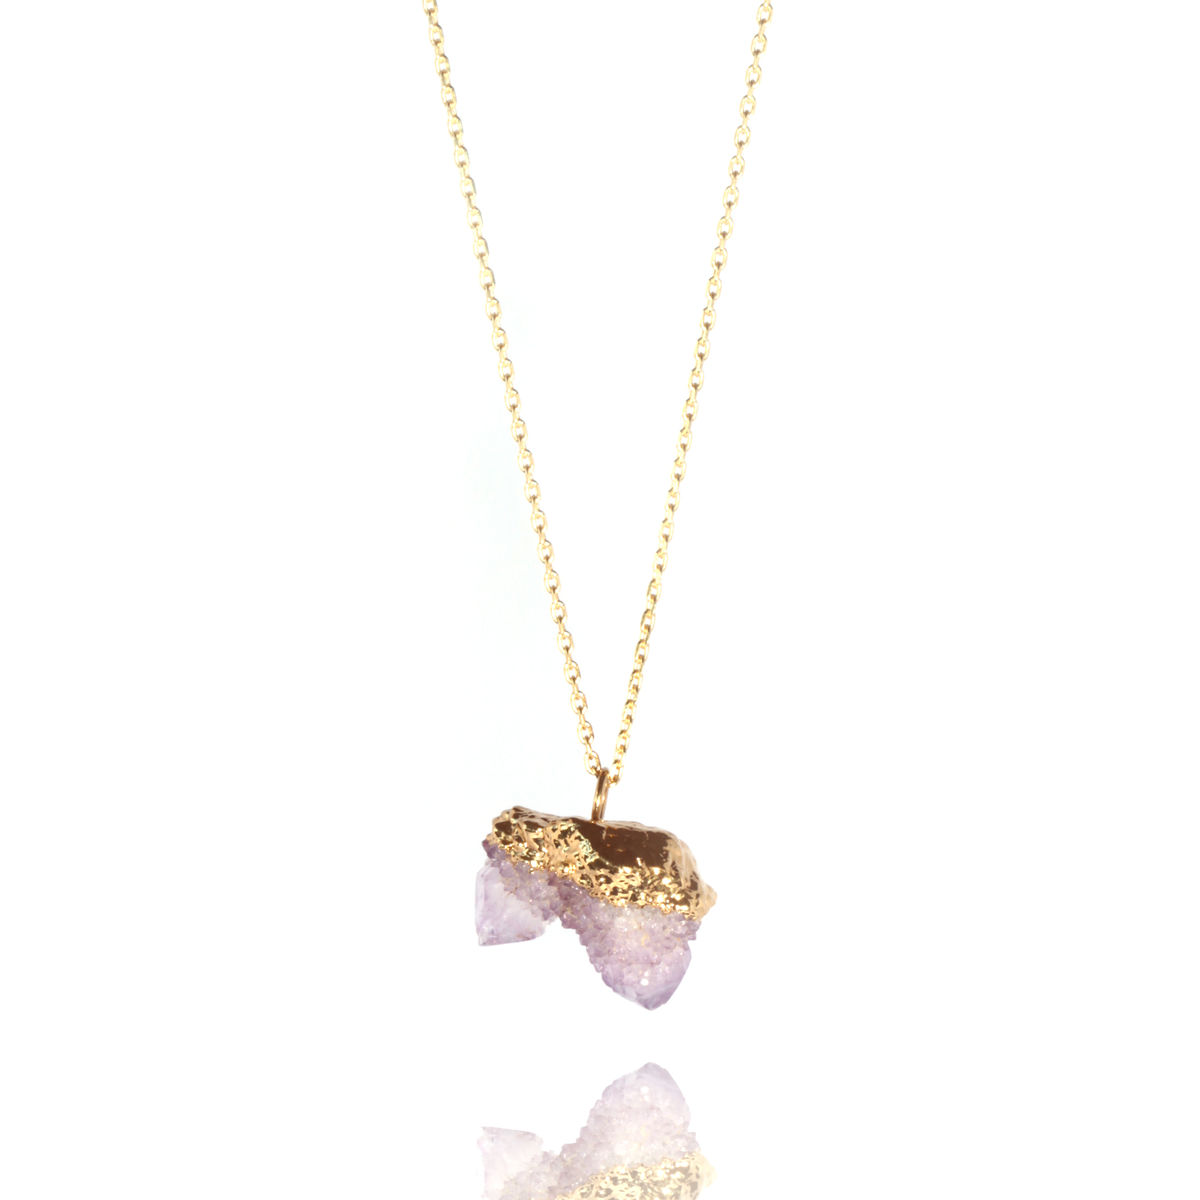 Amethyst spirit quartz and 22ct yellow gold pendant diane turner amethyst spirit quartz and 22ct yellow gold pendant mozeypictures Gallery